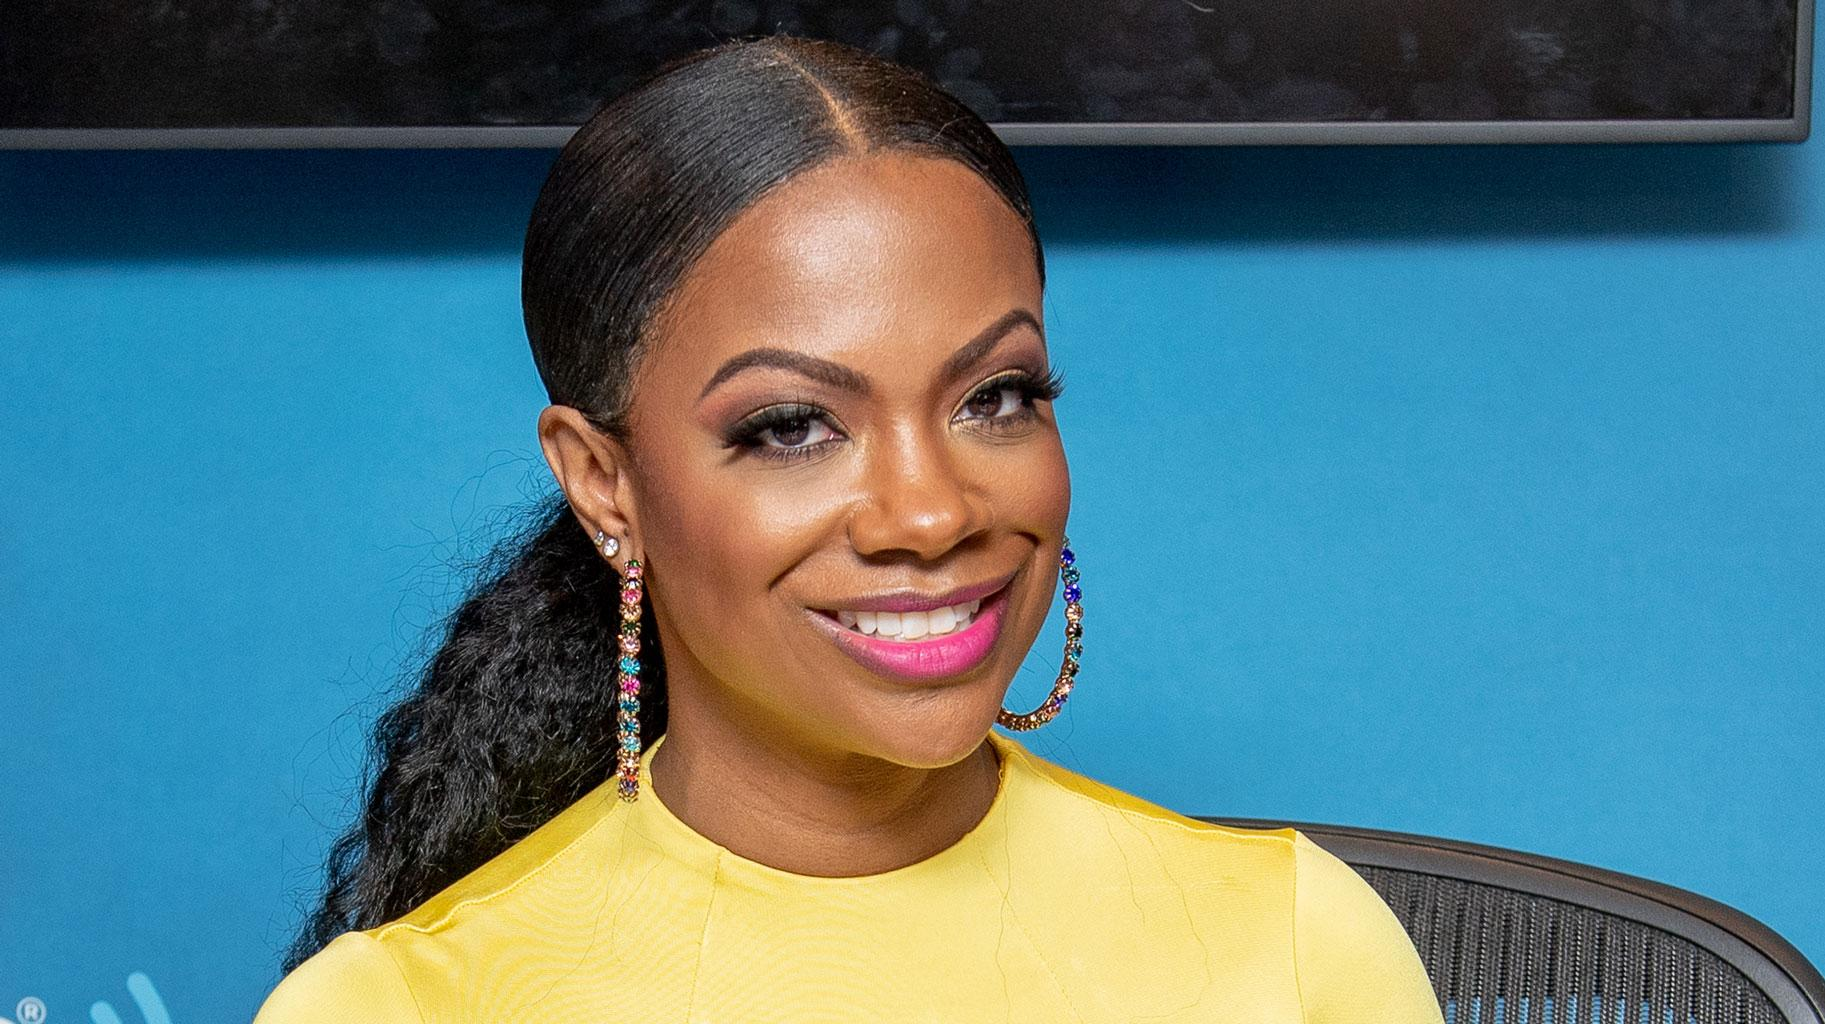 Kandi Burruss Is Grateful To Everyone Who Attended 'Welcome To The Dungeon' Show For Her Birthday - Wendy Williams Was There As Well